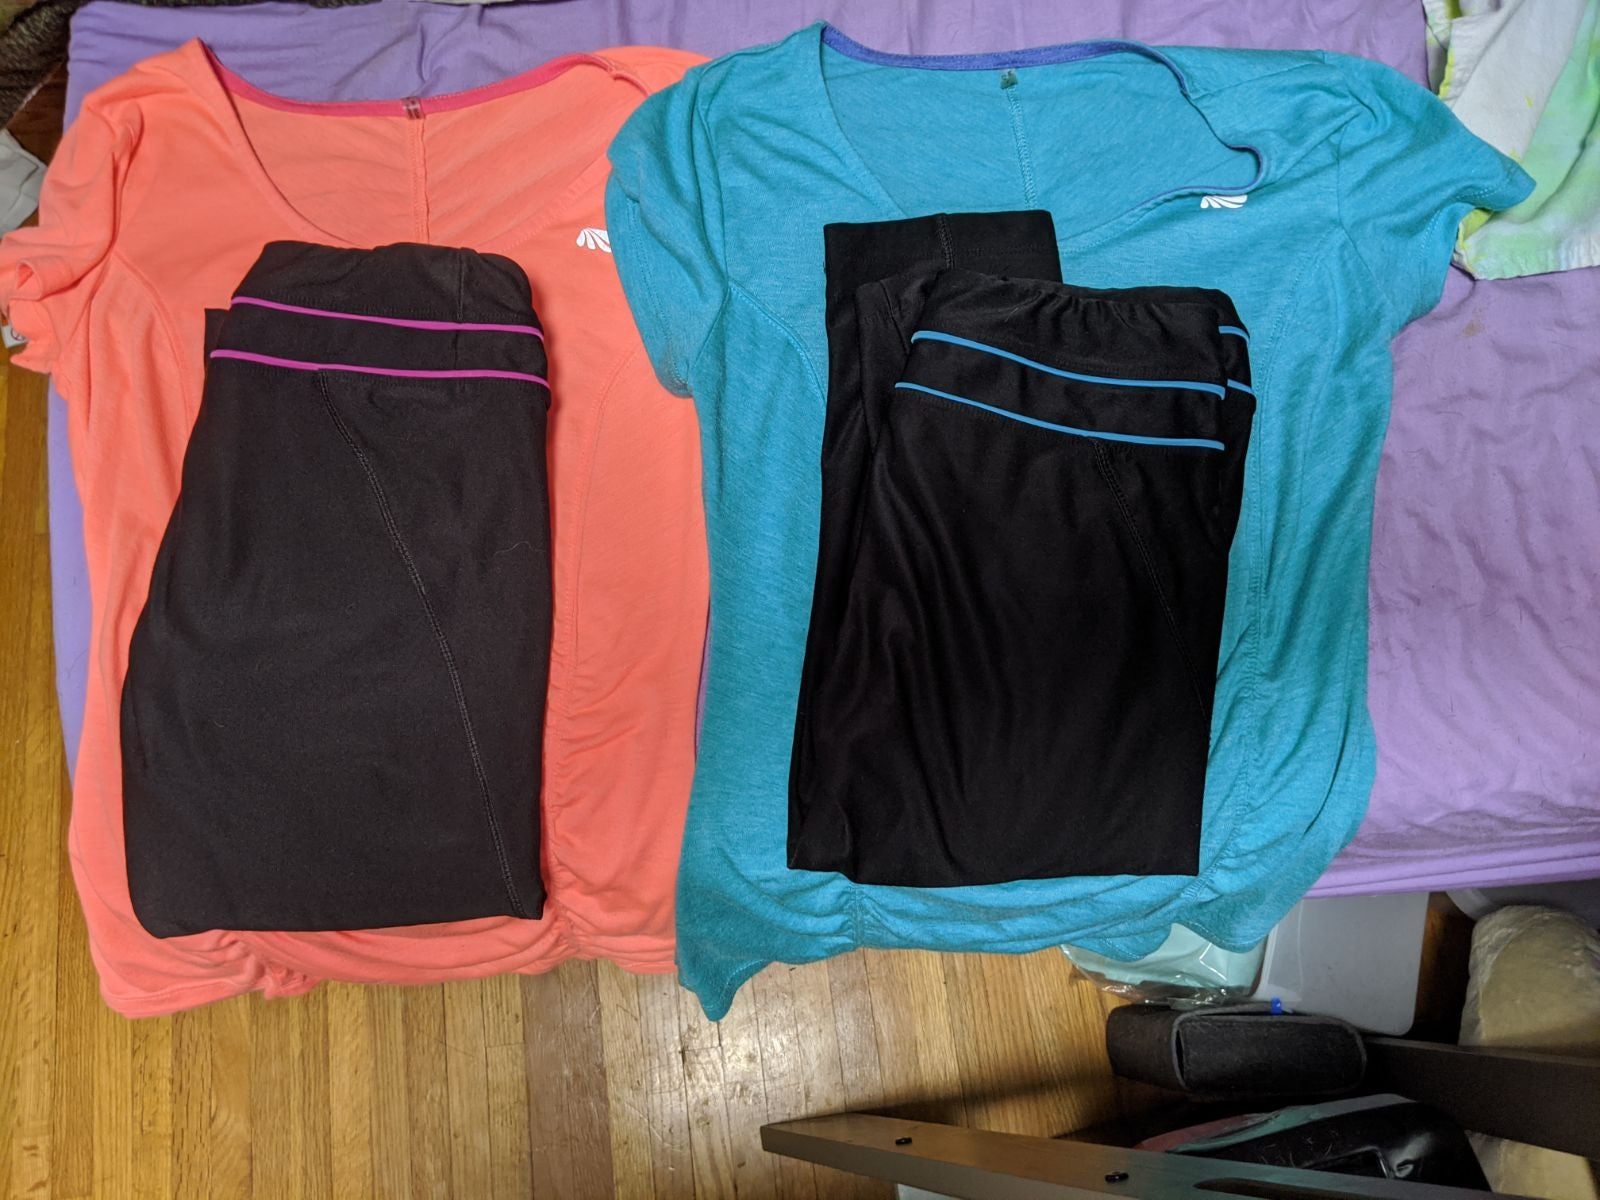 Yoga/ fitness outfit bundle